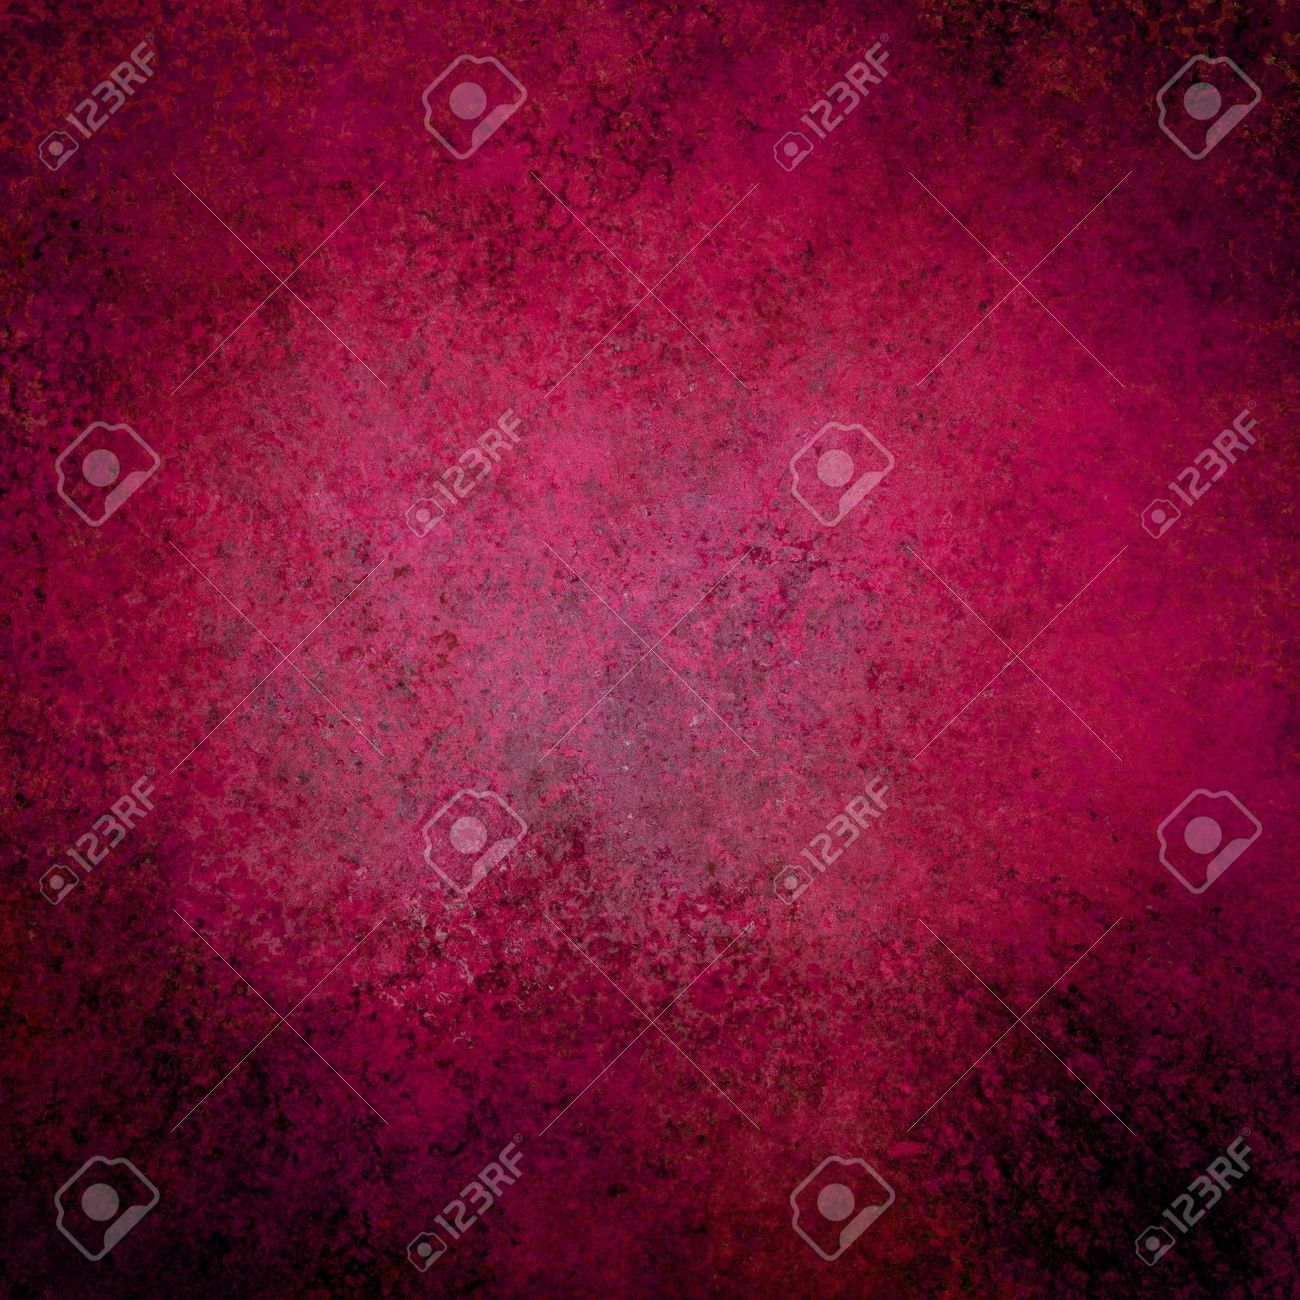 Abstract Pink Background Elegant Distressed Vintage Grunge